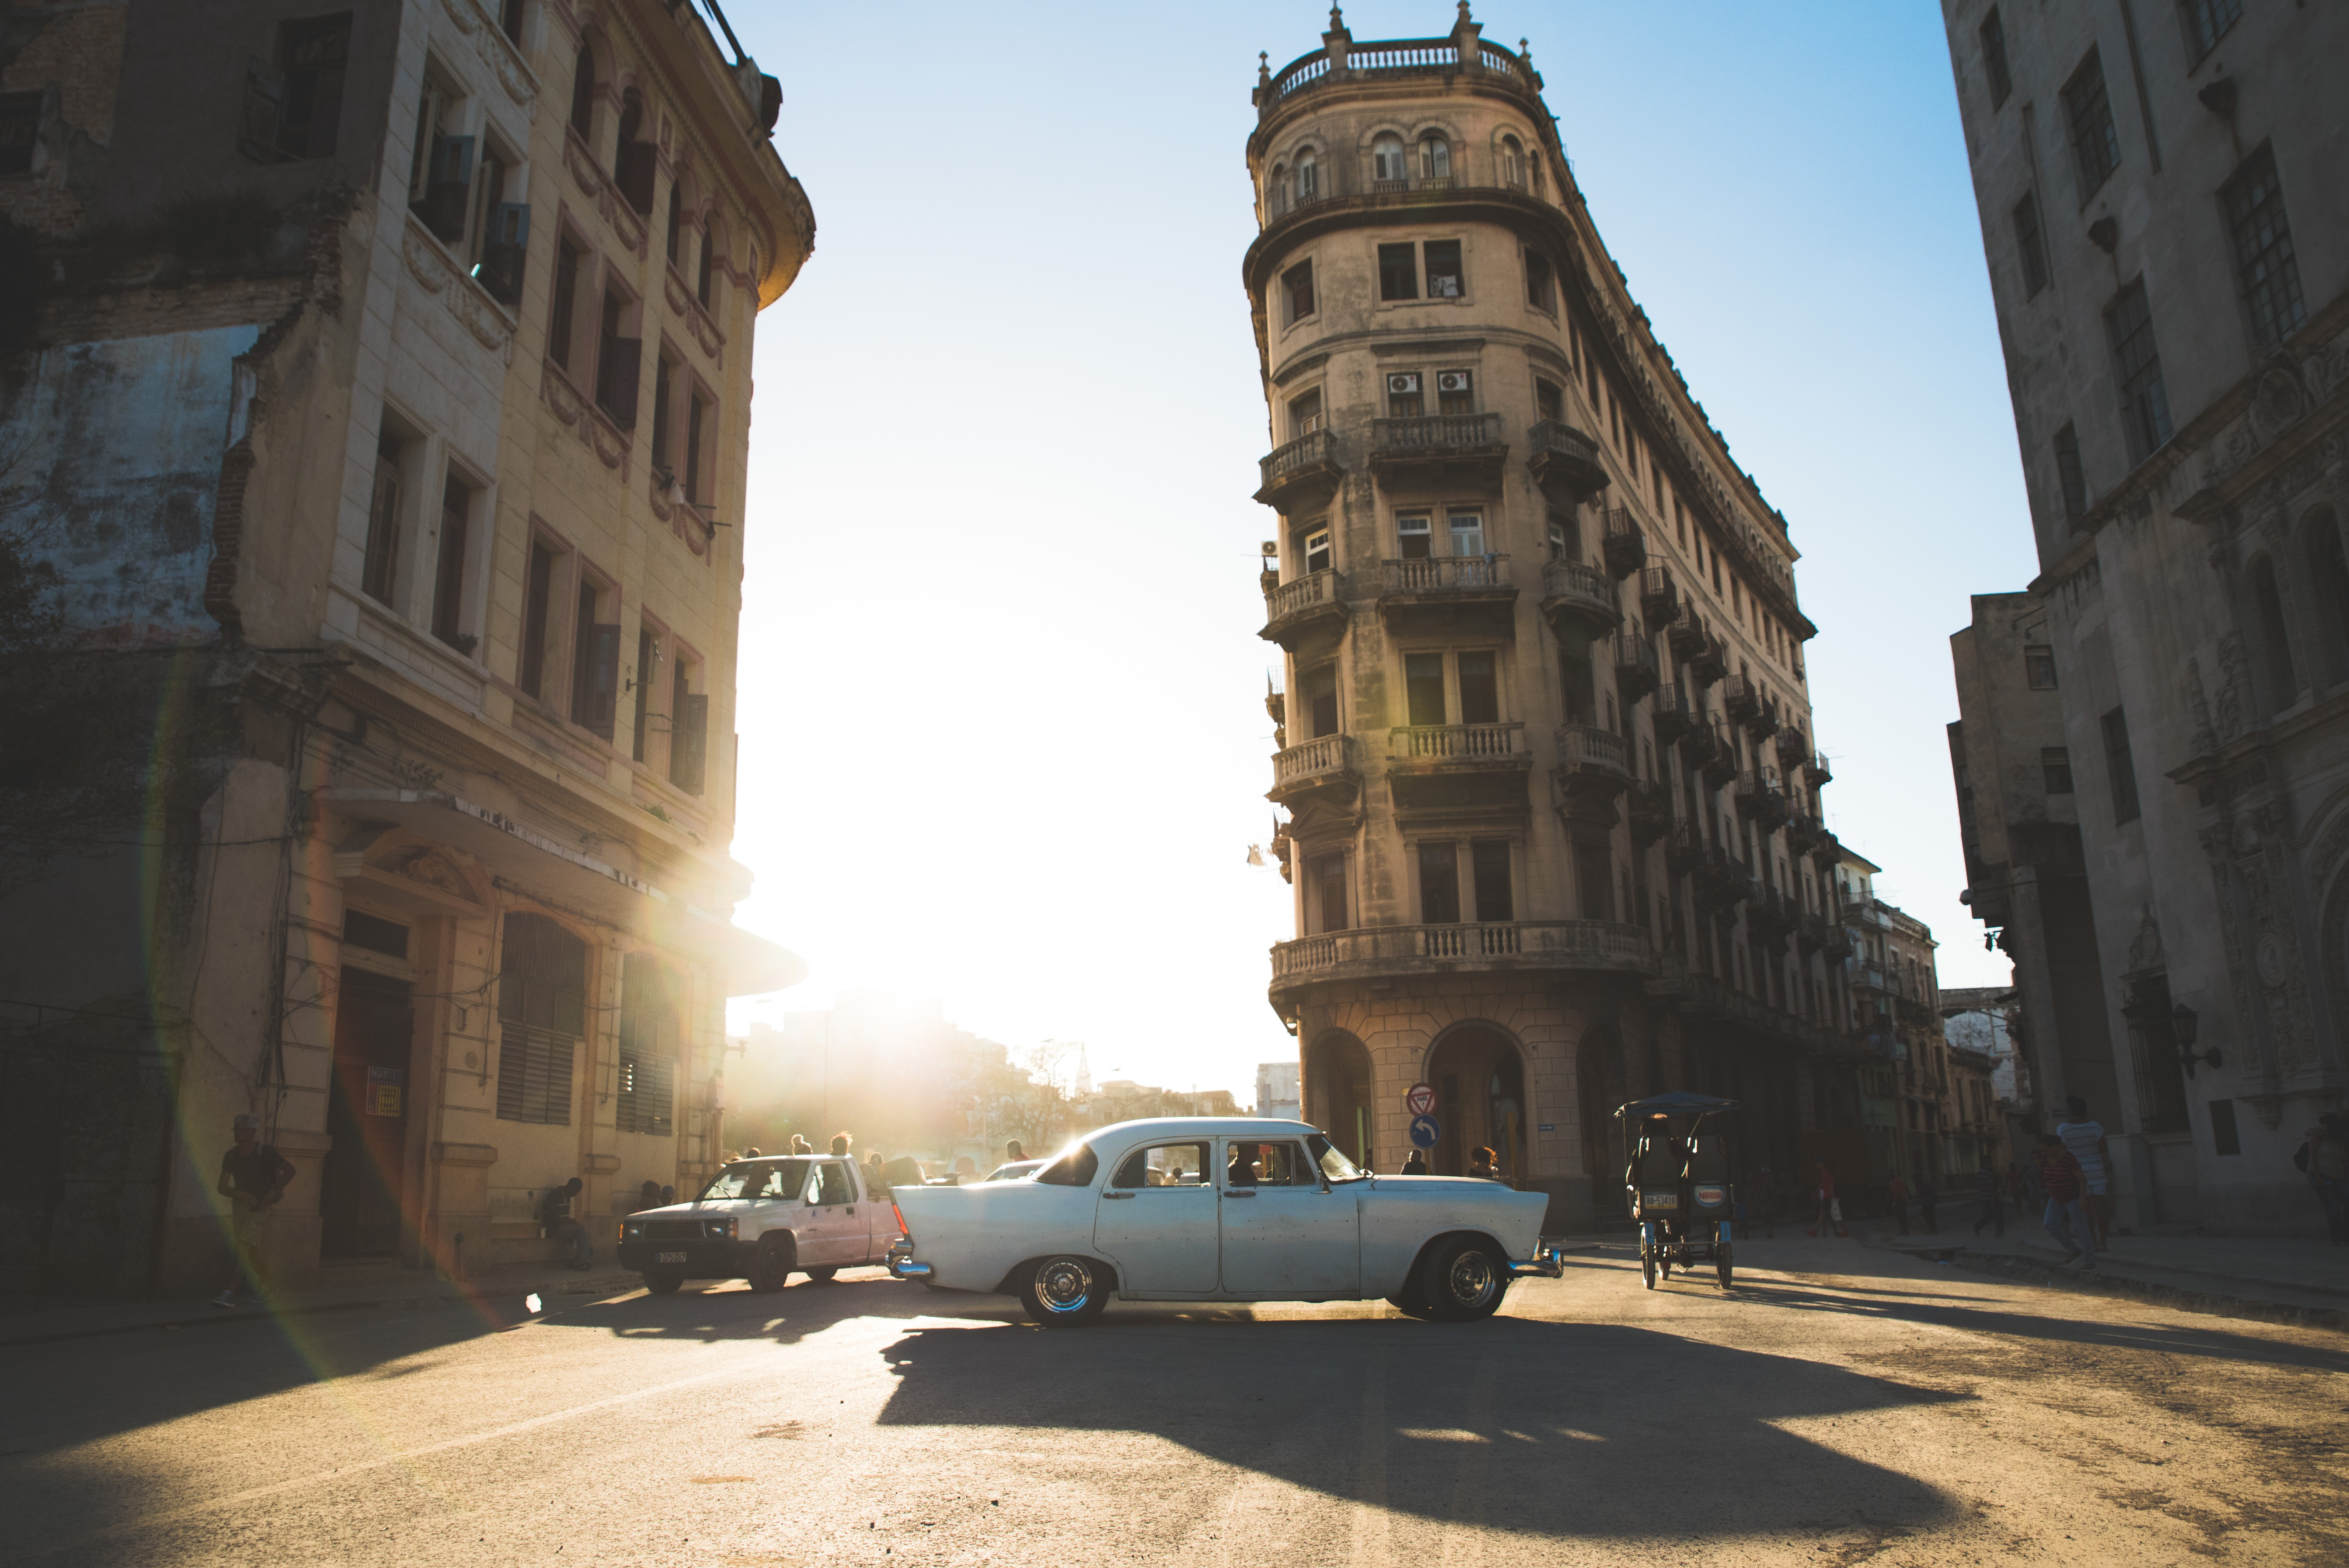 Vintage car surrounded by buildings in the sun